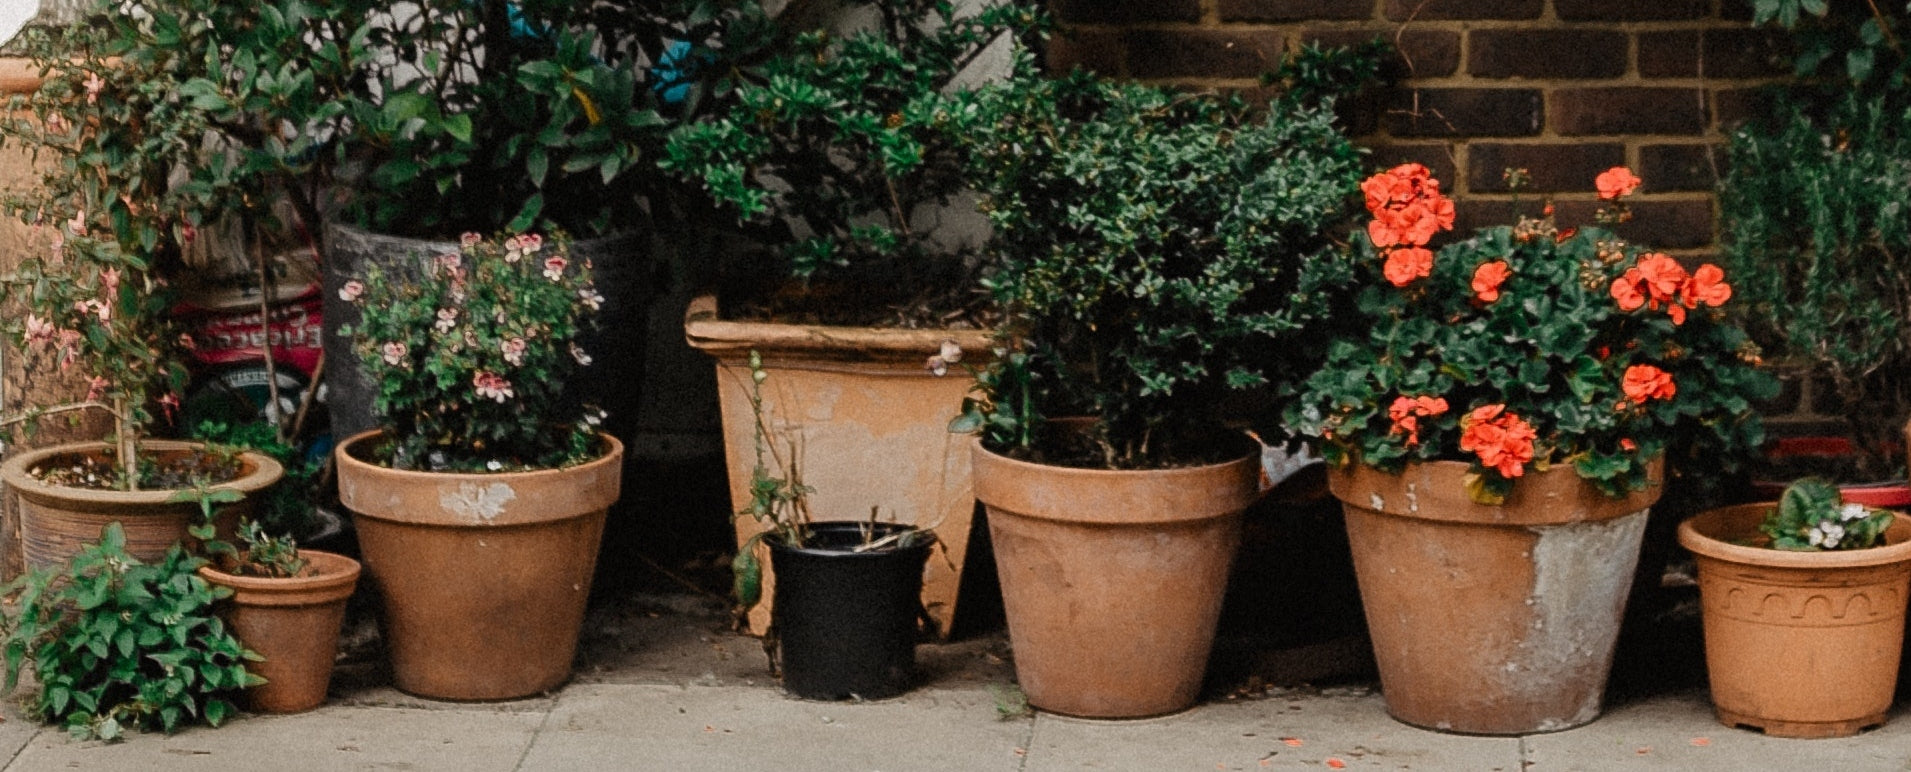 Terracotta Pots With Plants And Flowers